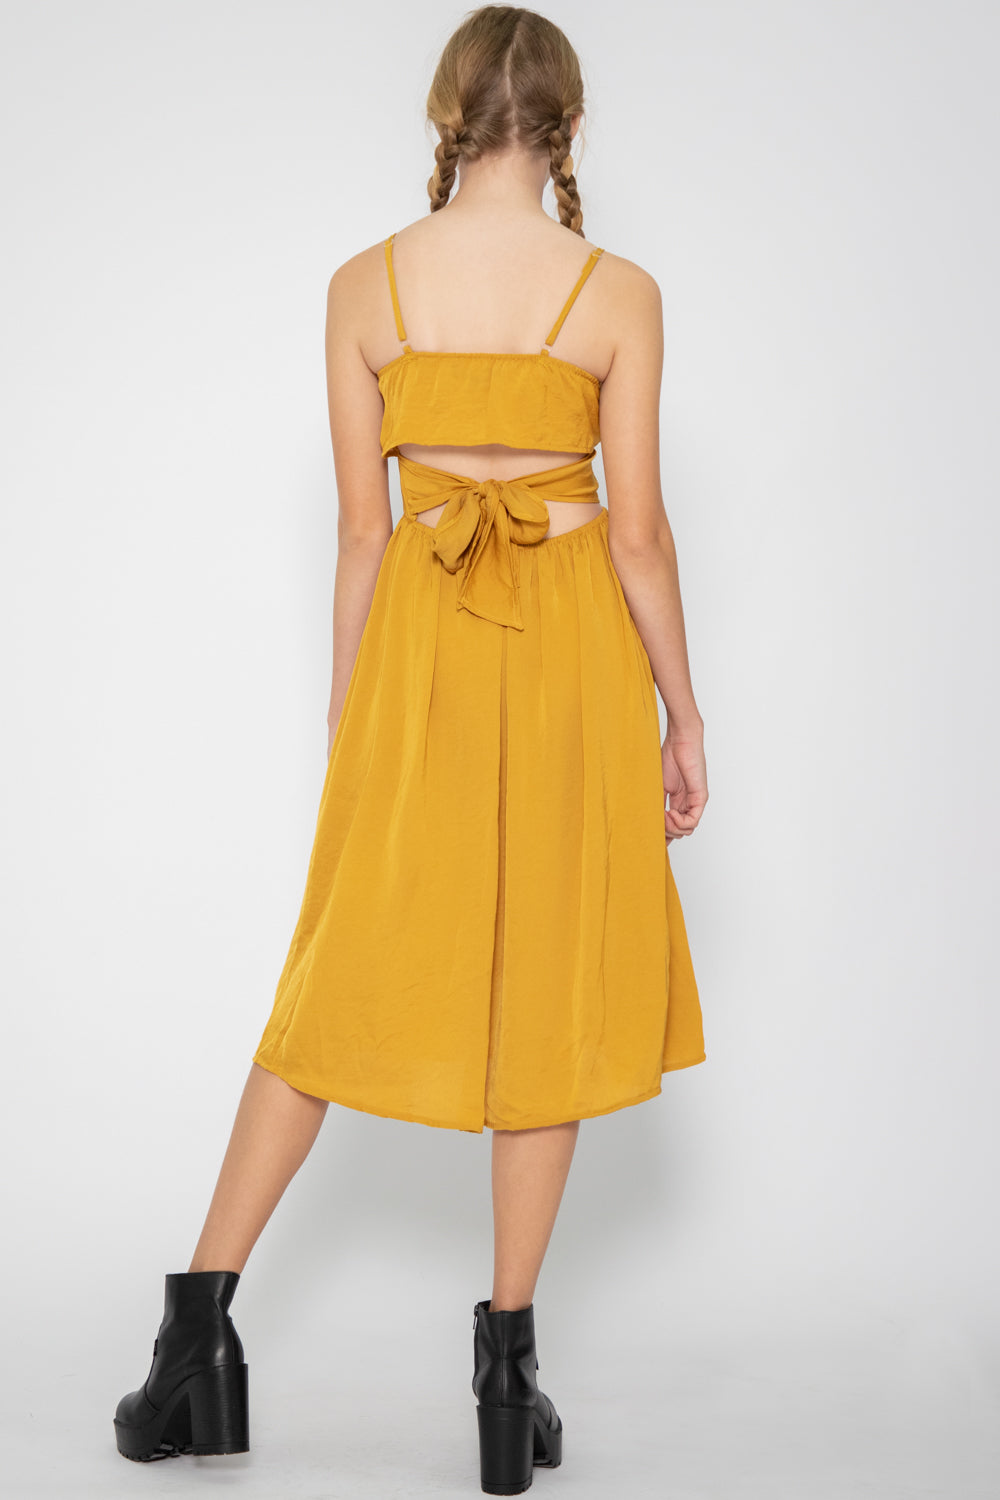 Luna Open Back Midi Dress in Mustard - Three One Duo